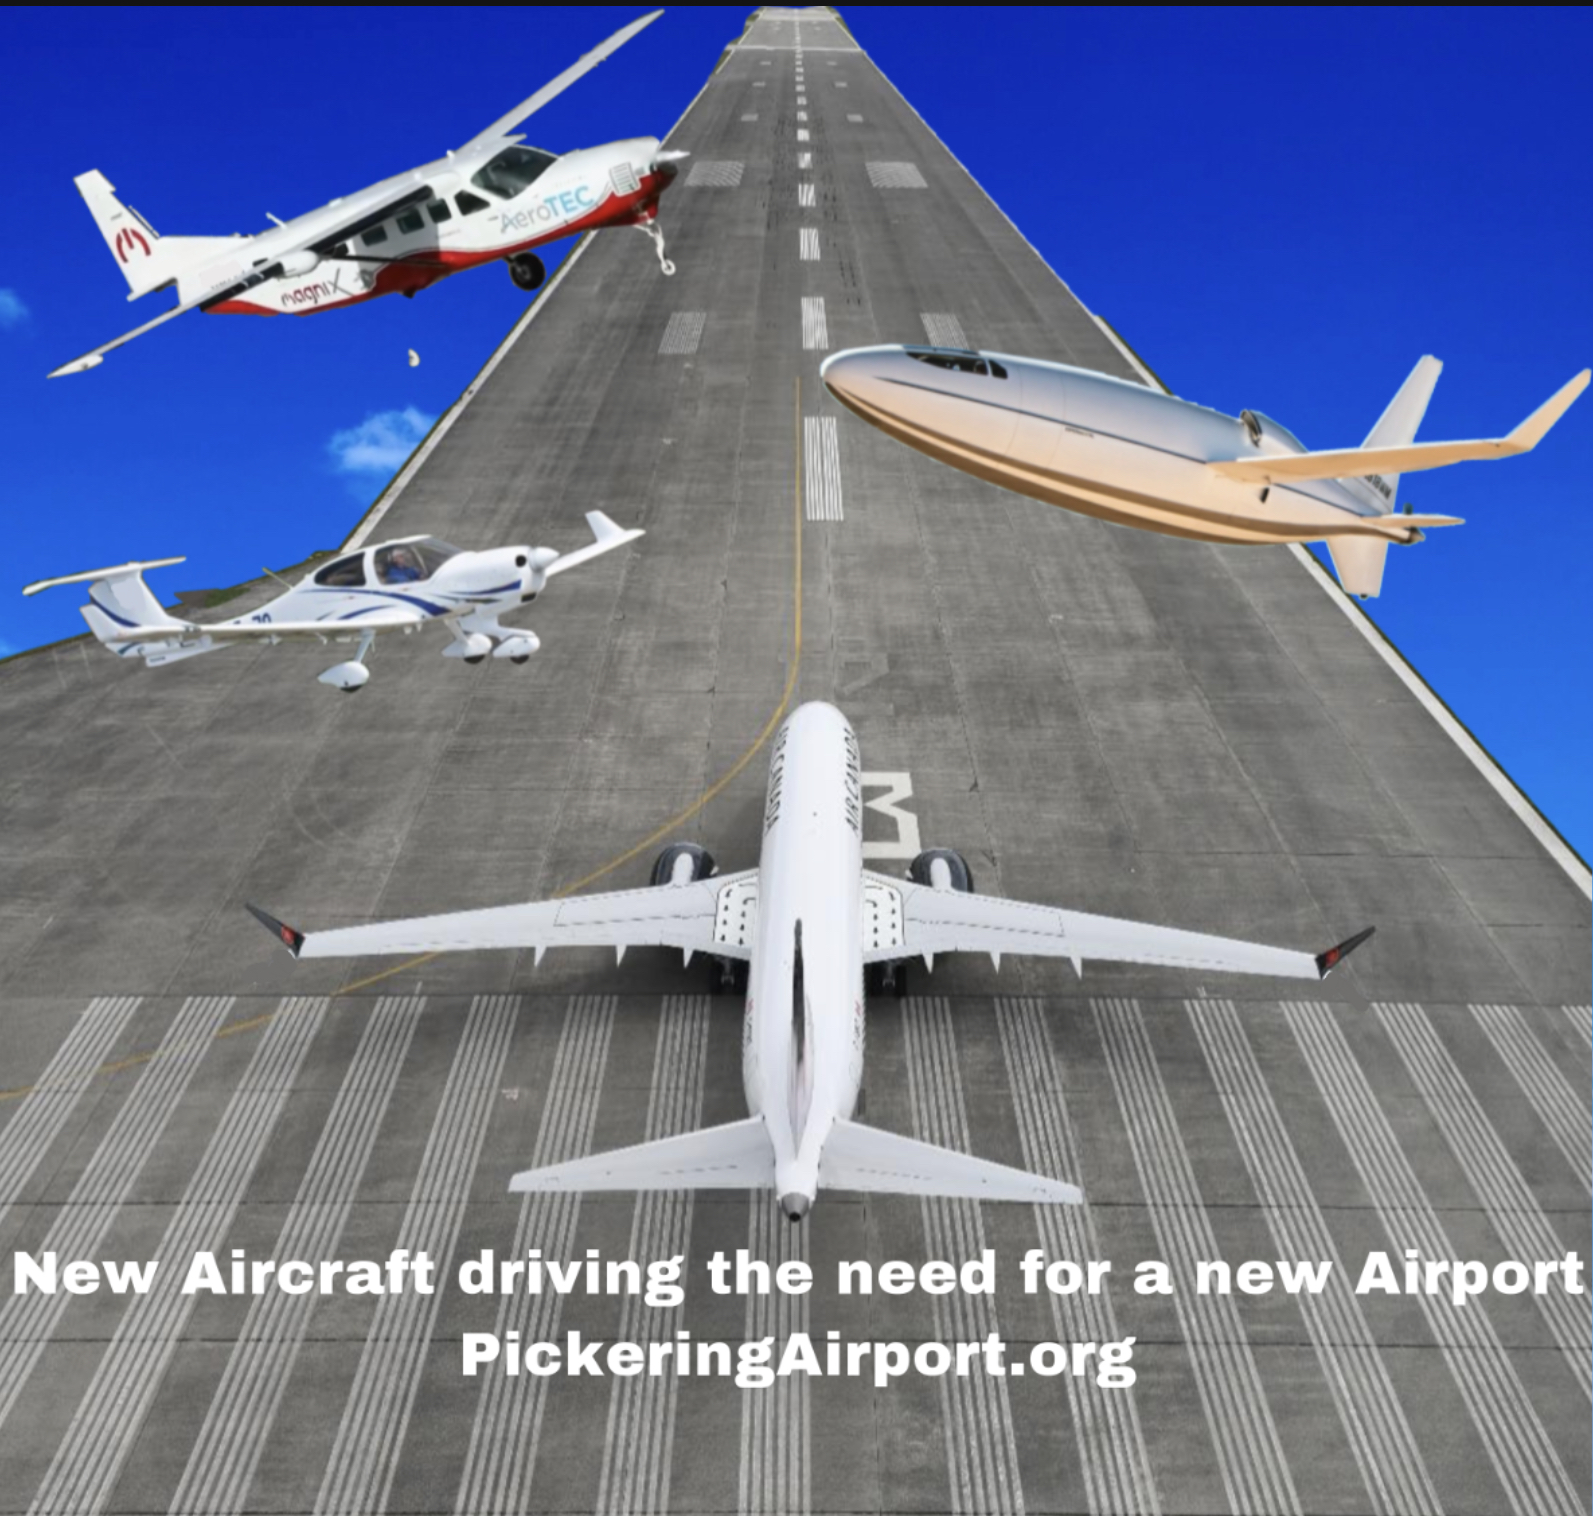 The New Aircraft of Pickering Airport: A Quest for Efficiency